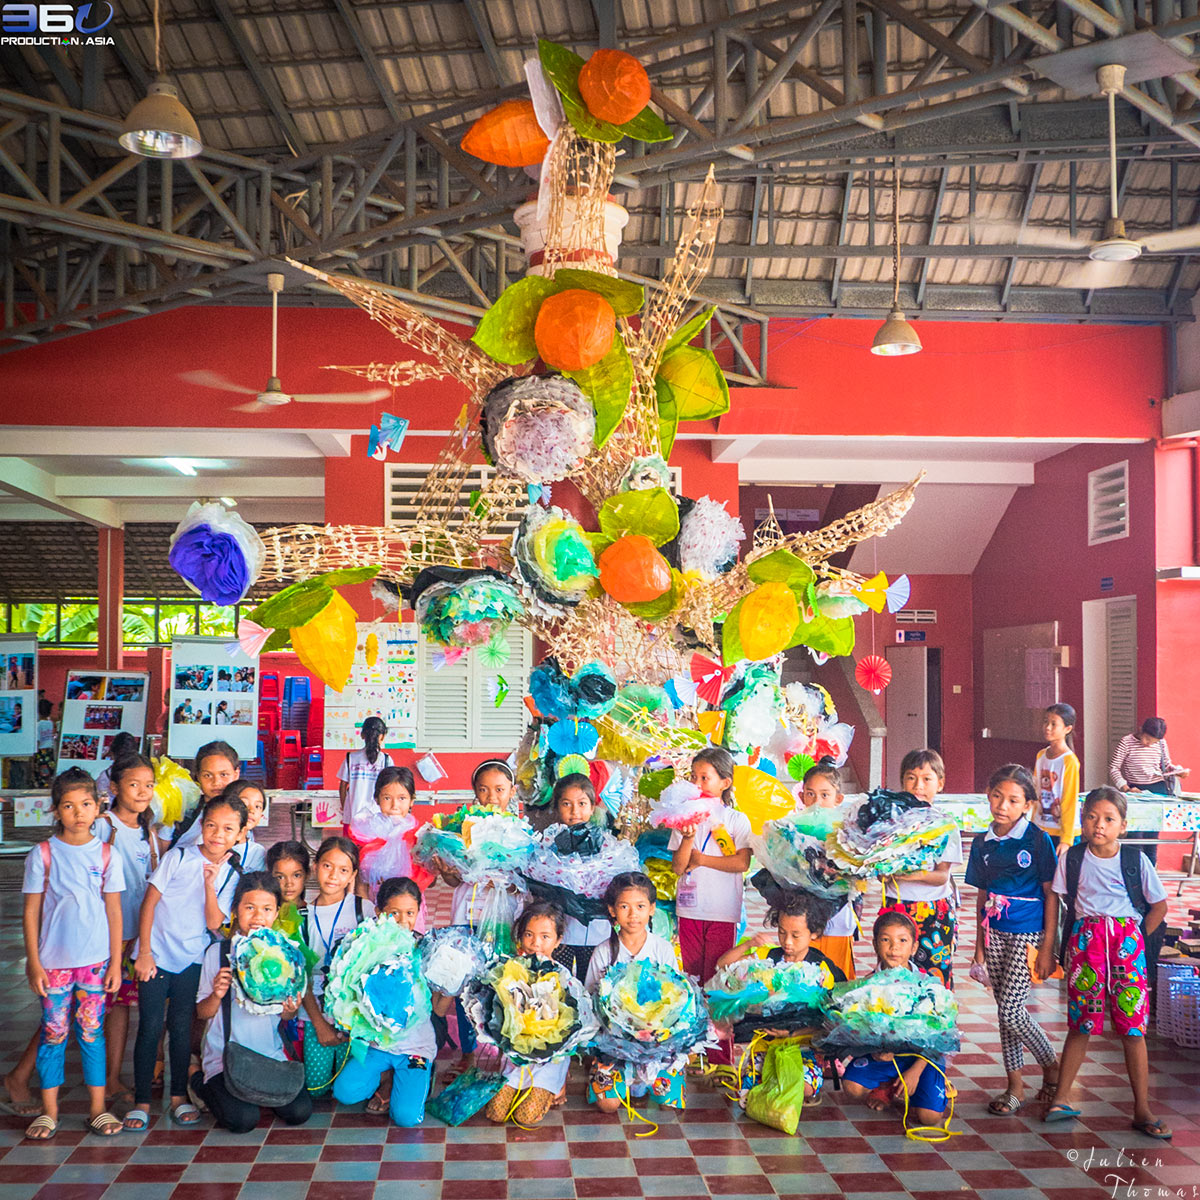 Participated schoolchildren whose have created large flowers from recycled plastic waste to hang on a crafted tree standing in Happy Chandara schoolyard.